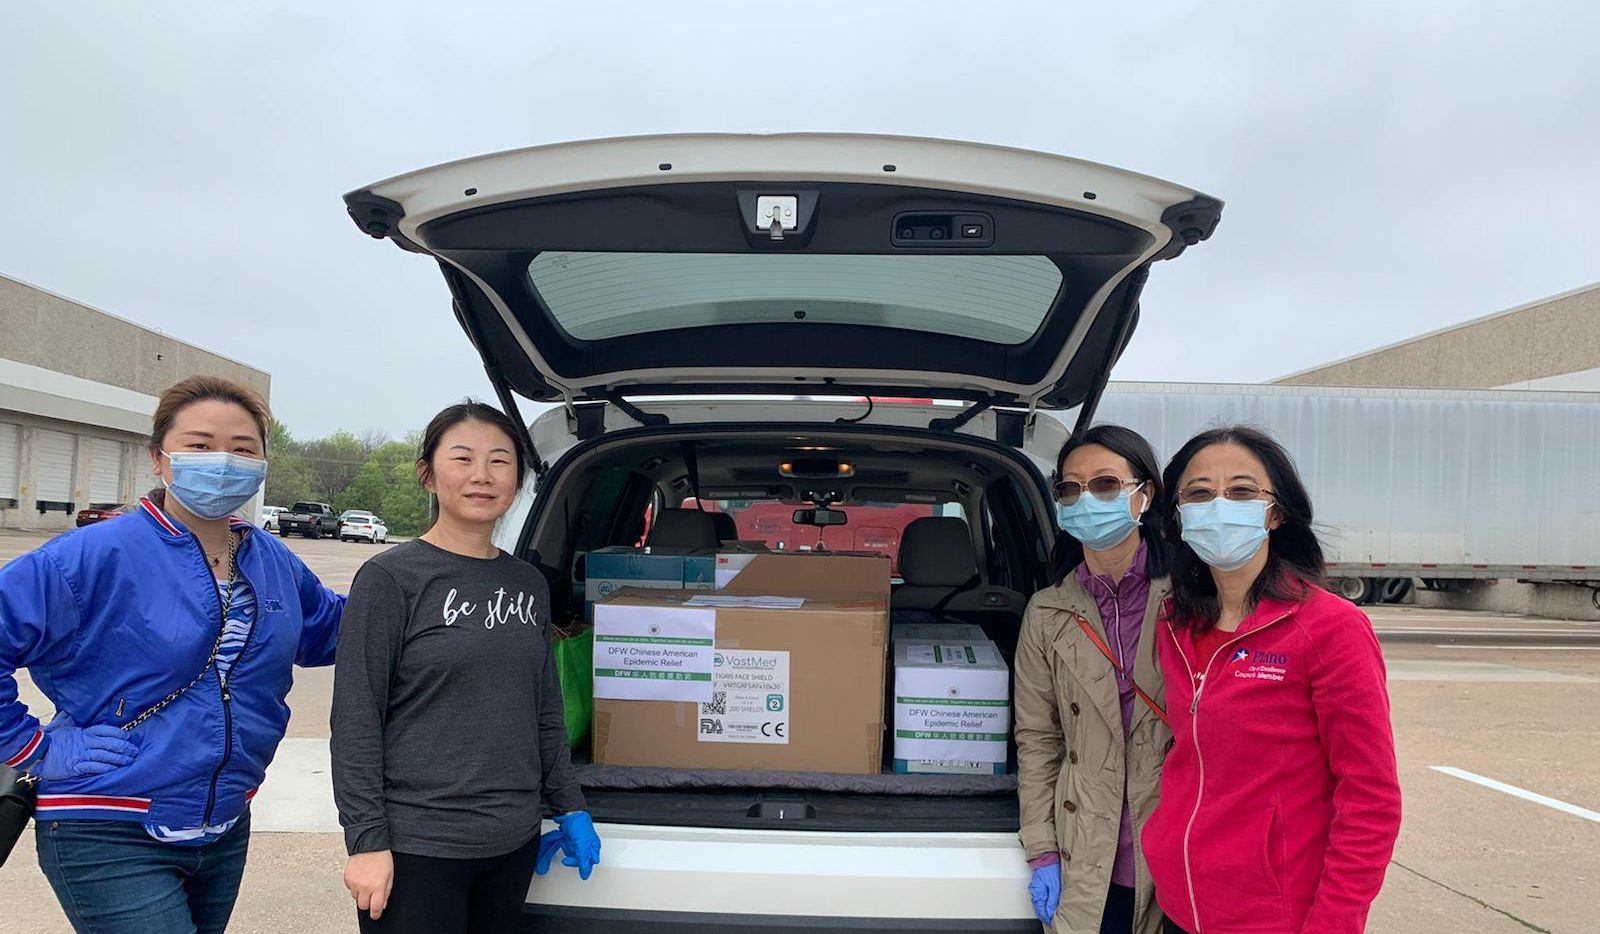 Plano City Council member Lily Bao (right) and volunteers with DFW Chinese American Epidemic Relief distributed personal protective equipment for medical professionals at Baylor Scott & White Medical Center in Plano on Monday, March 23, 2020.